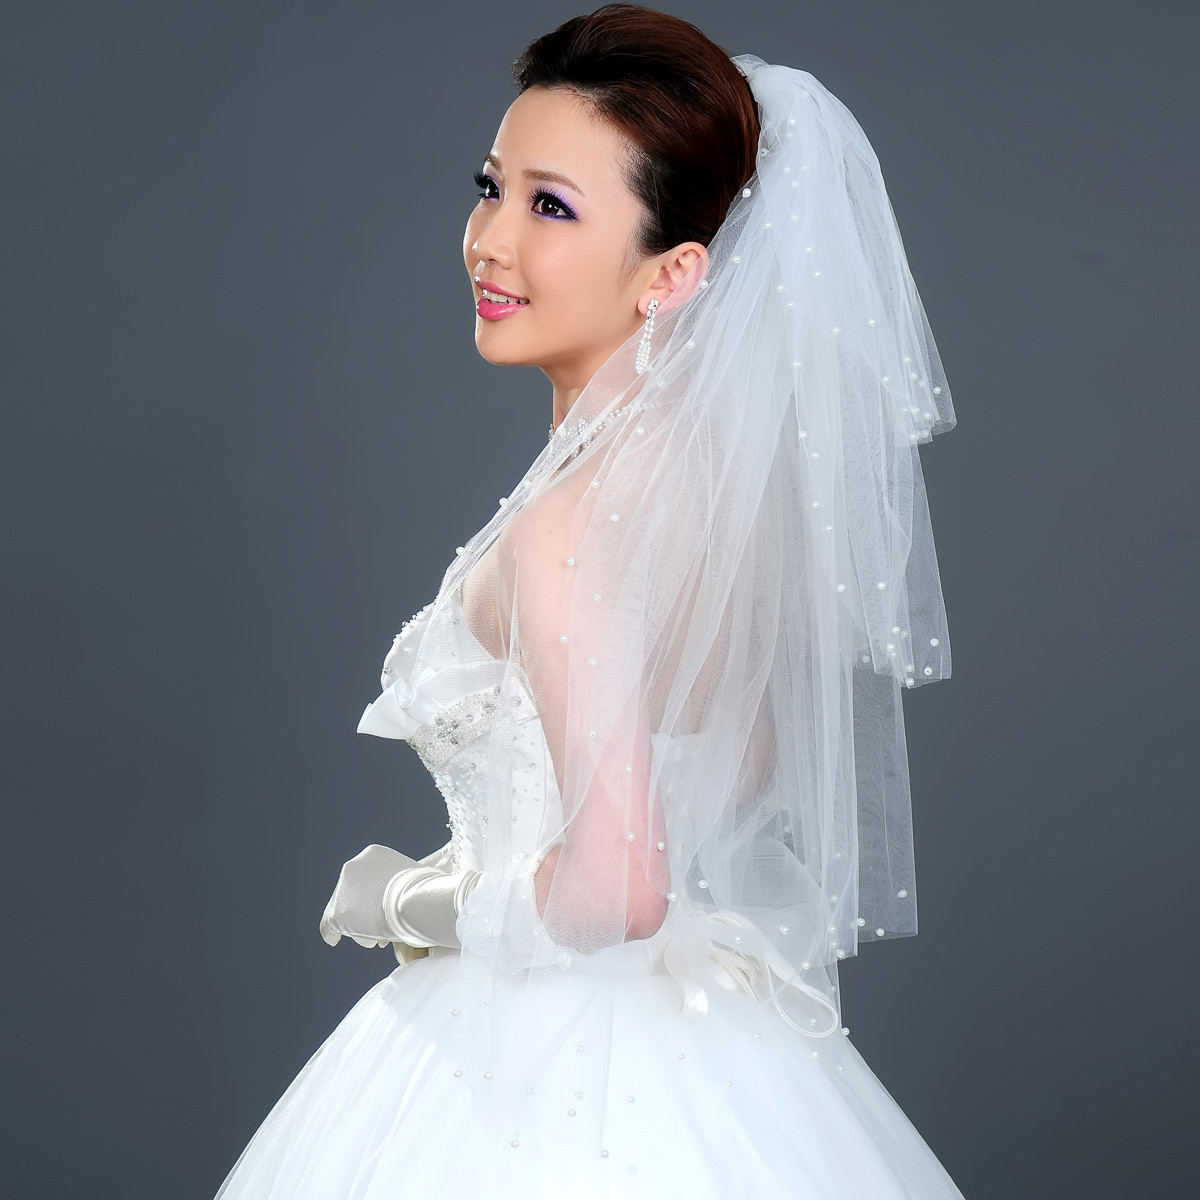 2012 New bride wedding long veil pearl multi-layer puffy veil 4 layers-Free Shipping